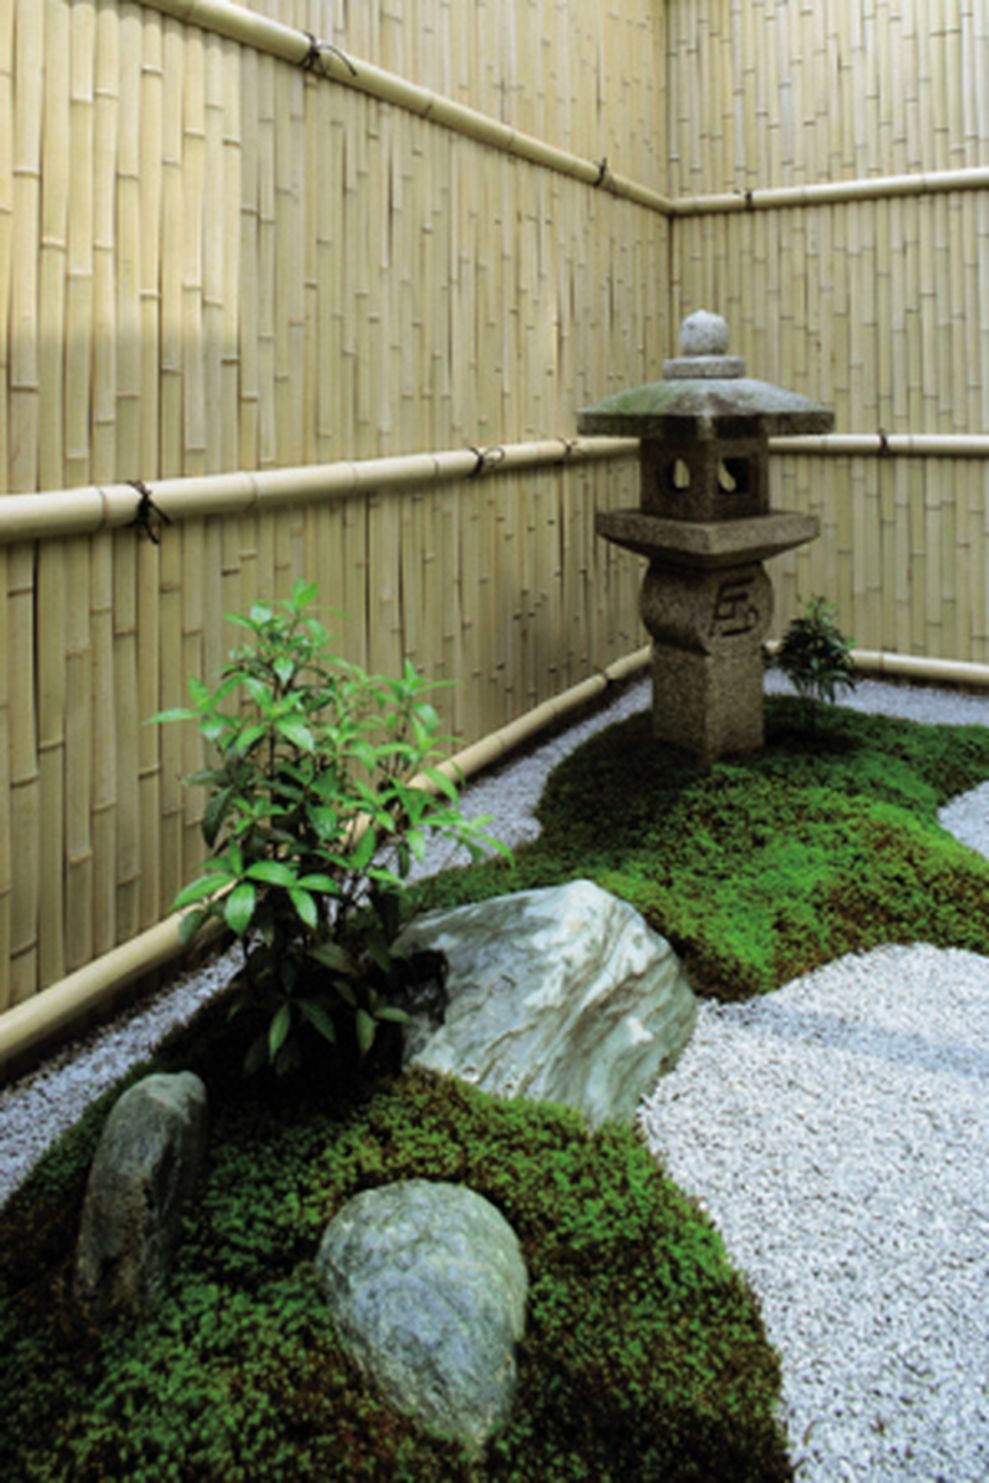 Inspiring small japanese garden design ideas 52 - ROUNDECOR on Small Backyard Japanese Garden Ideas id=68724